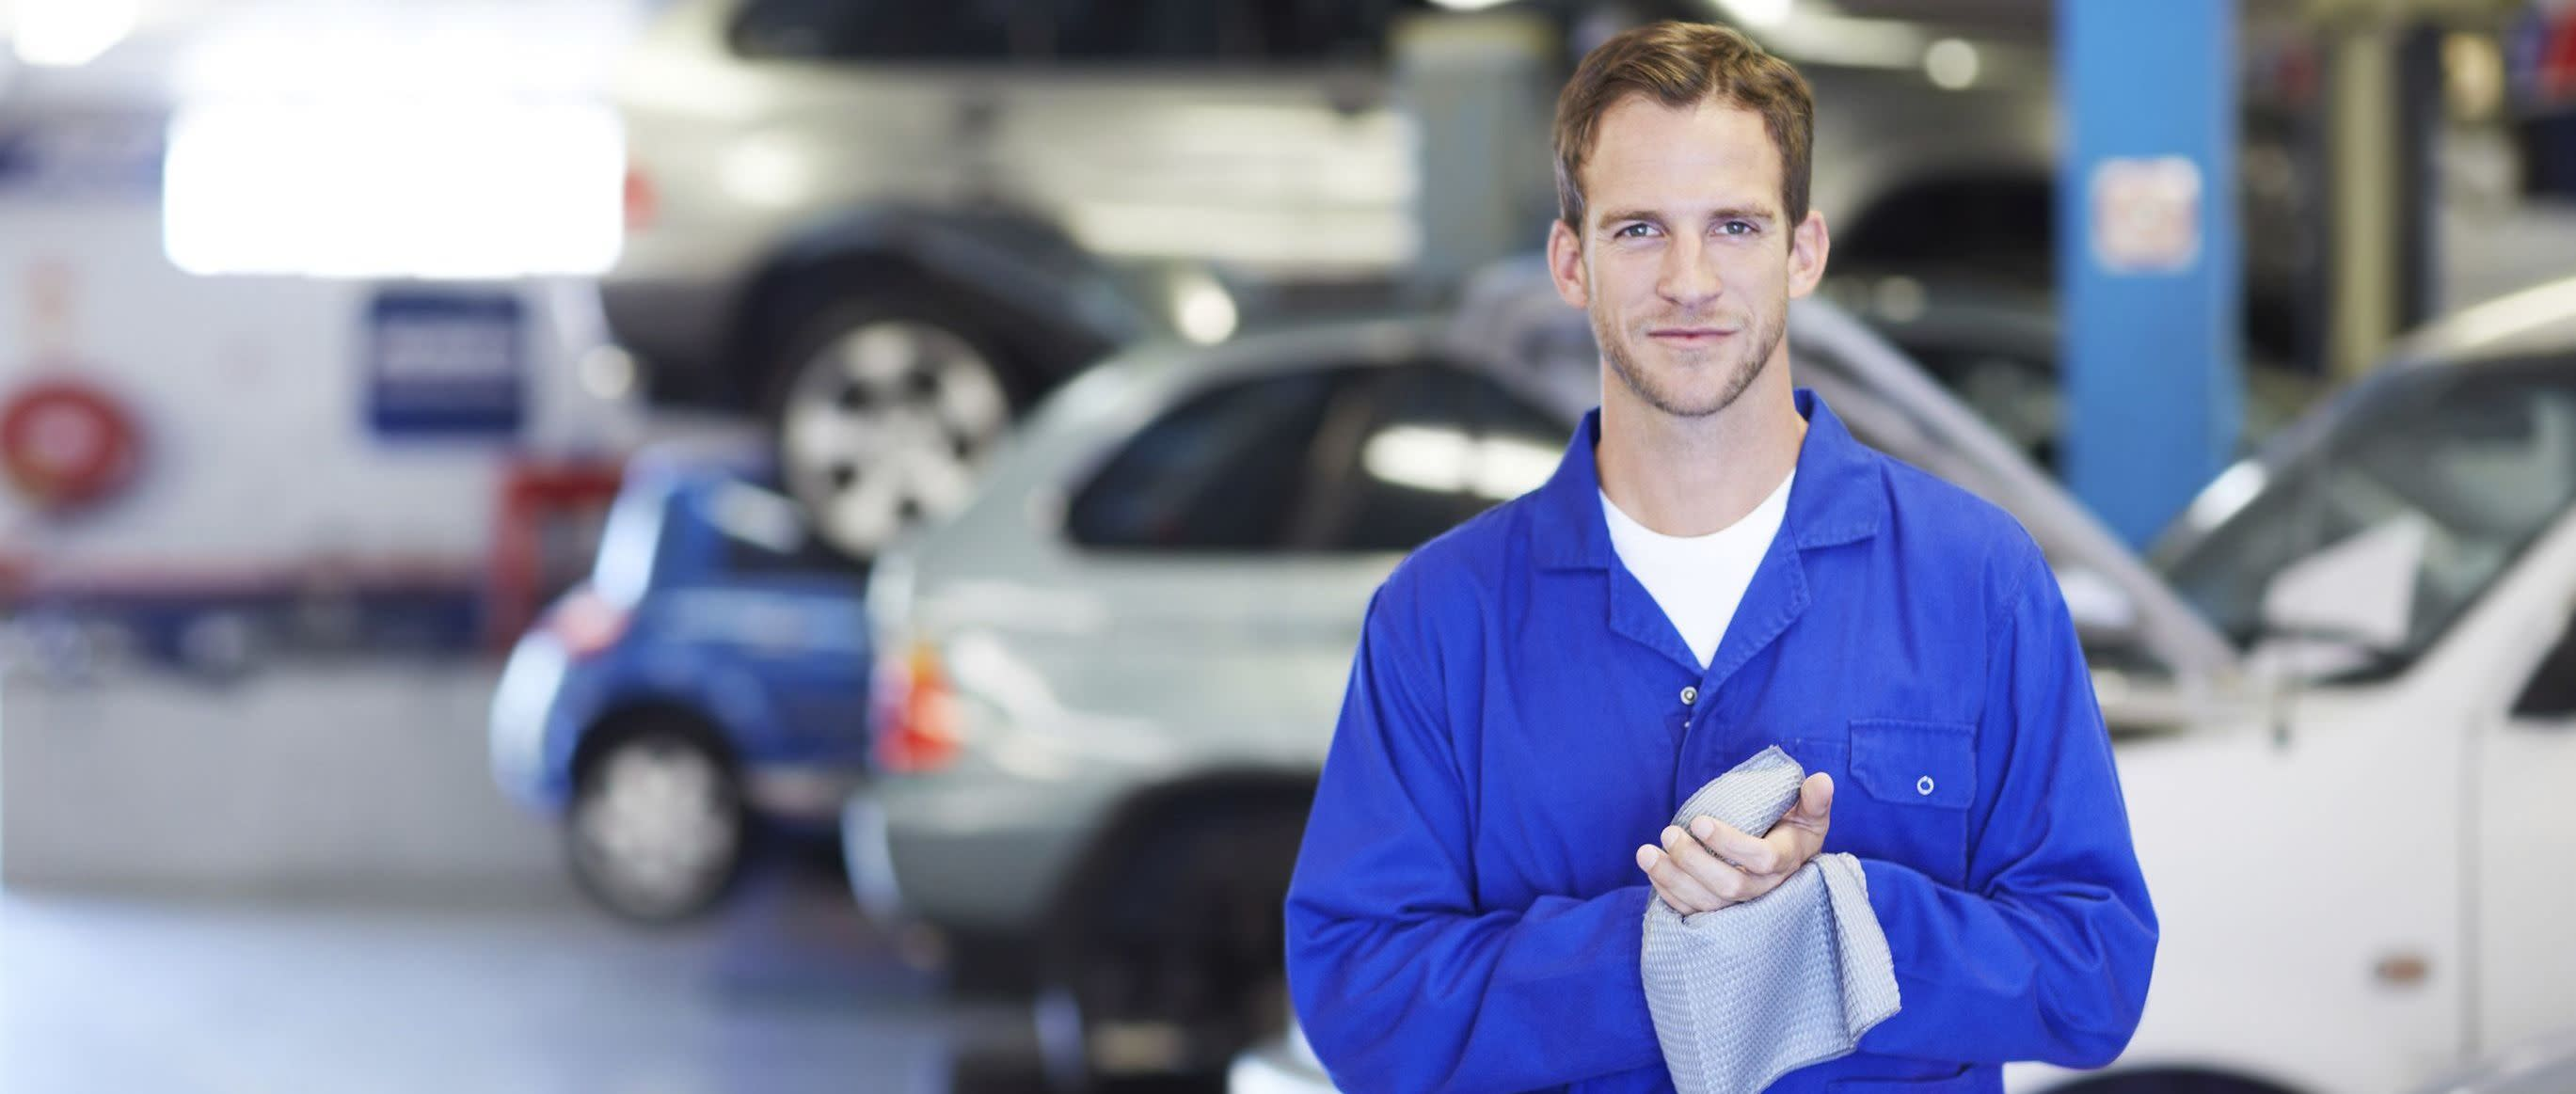 Auto Parts and Accessories for Sale in Watertown, SD